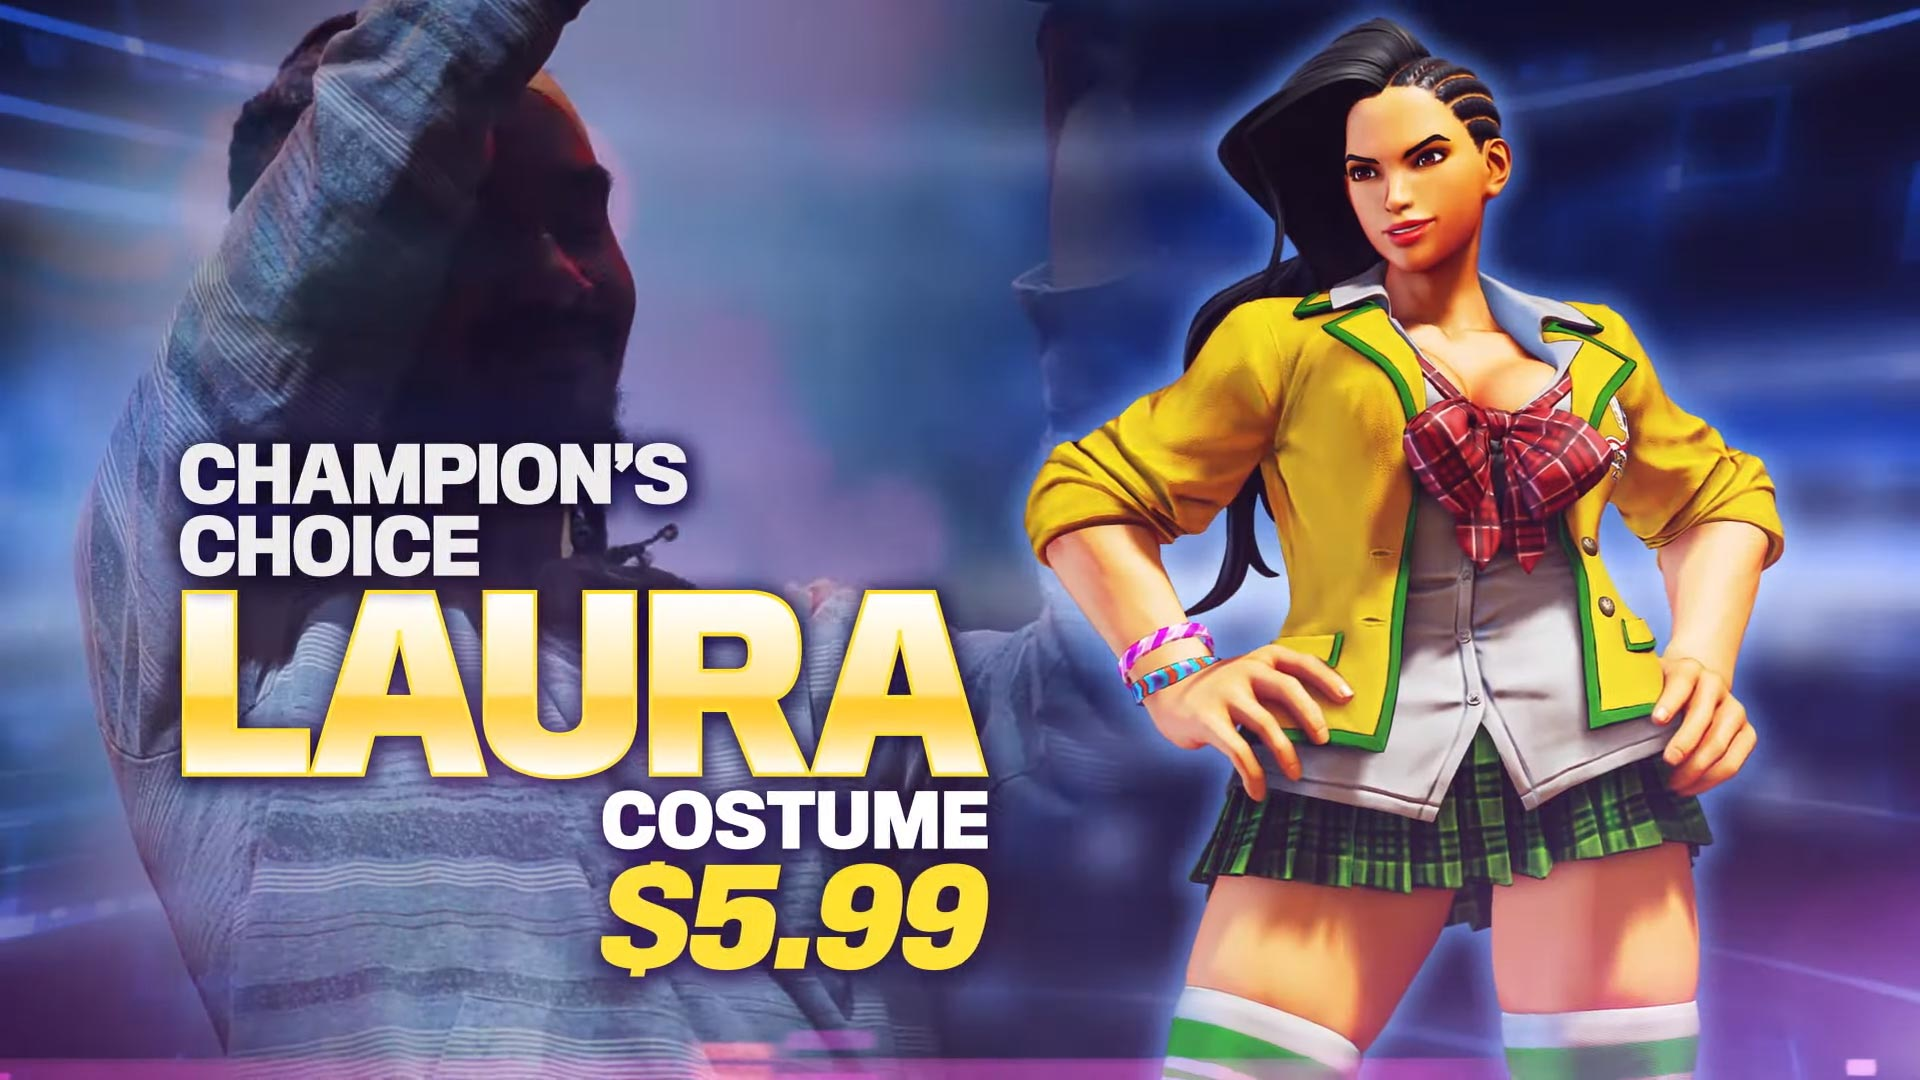 Street Fighter 5: Champion Edition 2020 Capcom Pro Tour DLC 2 out of 5 image gallery